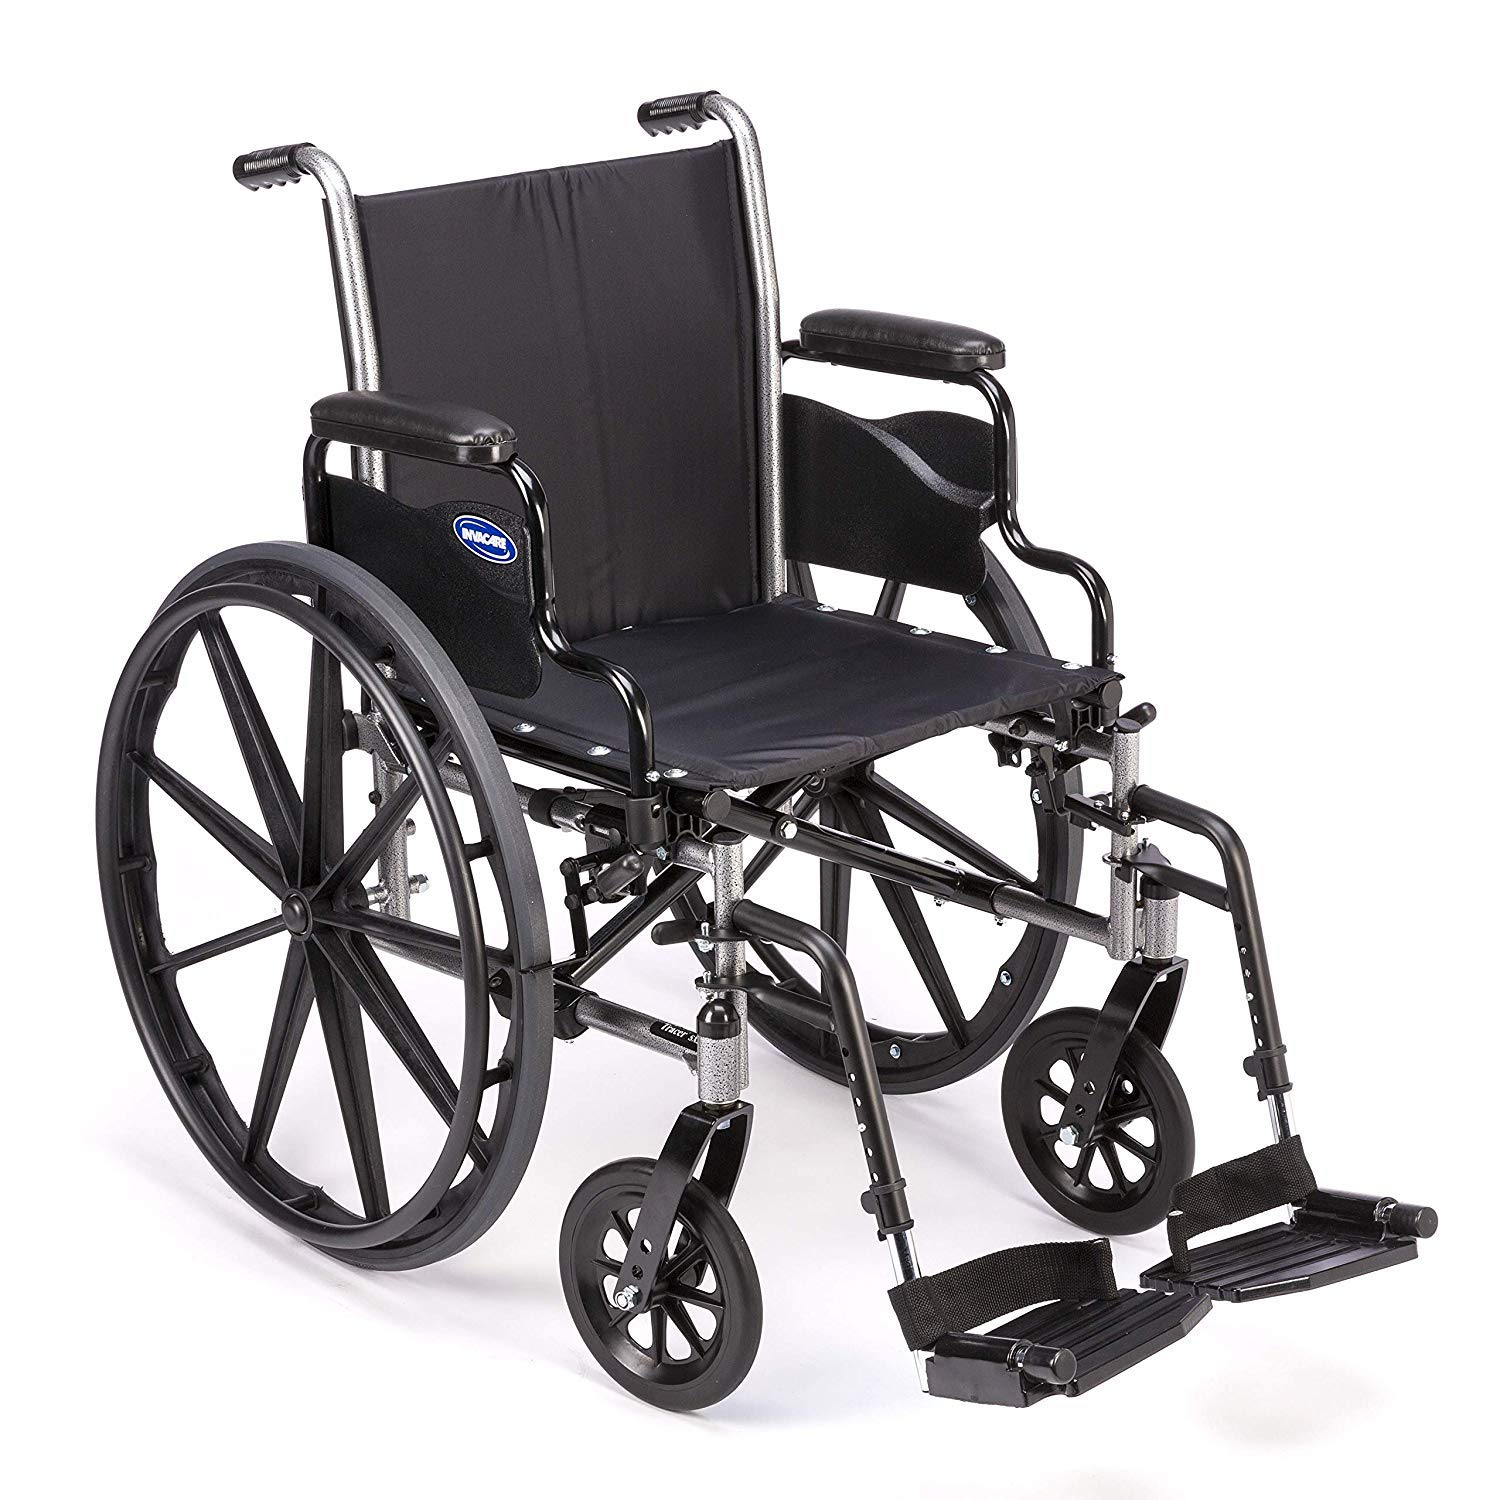 Invacare Tracer SX5 Wheelchair, with Desk Length Arms and T93HCP Composite Footrests with Heel Loops, 18'' Seat Width, 1193458 by Invacare